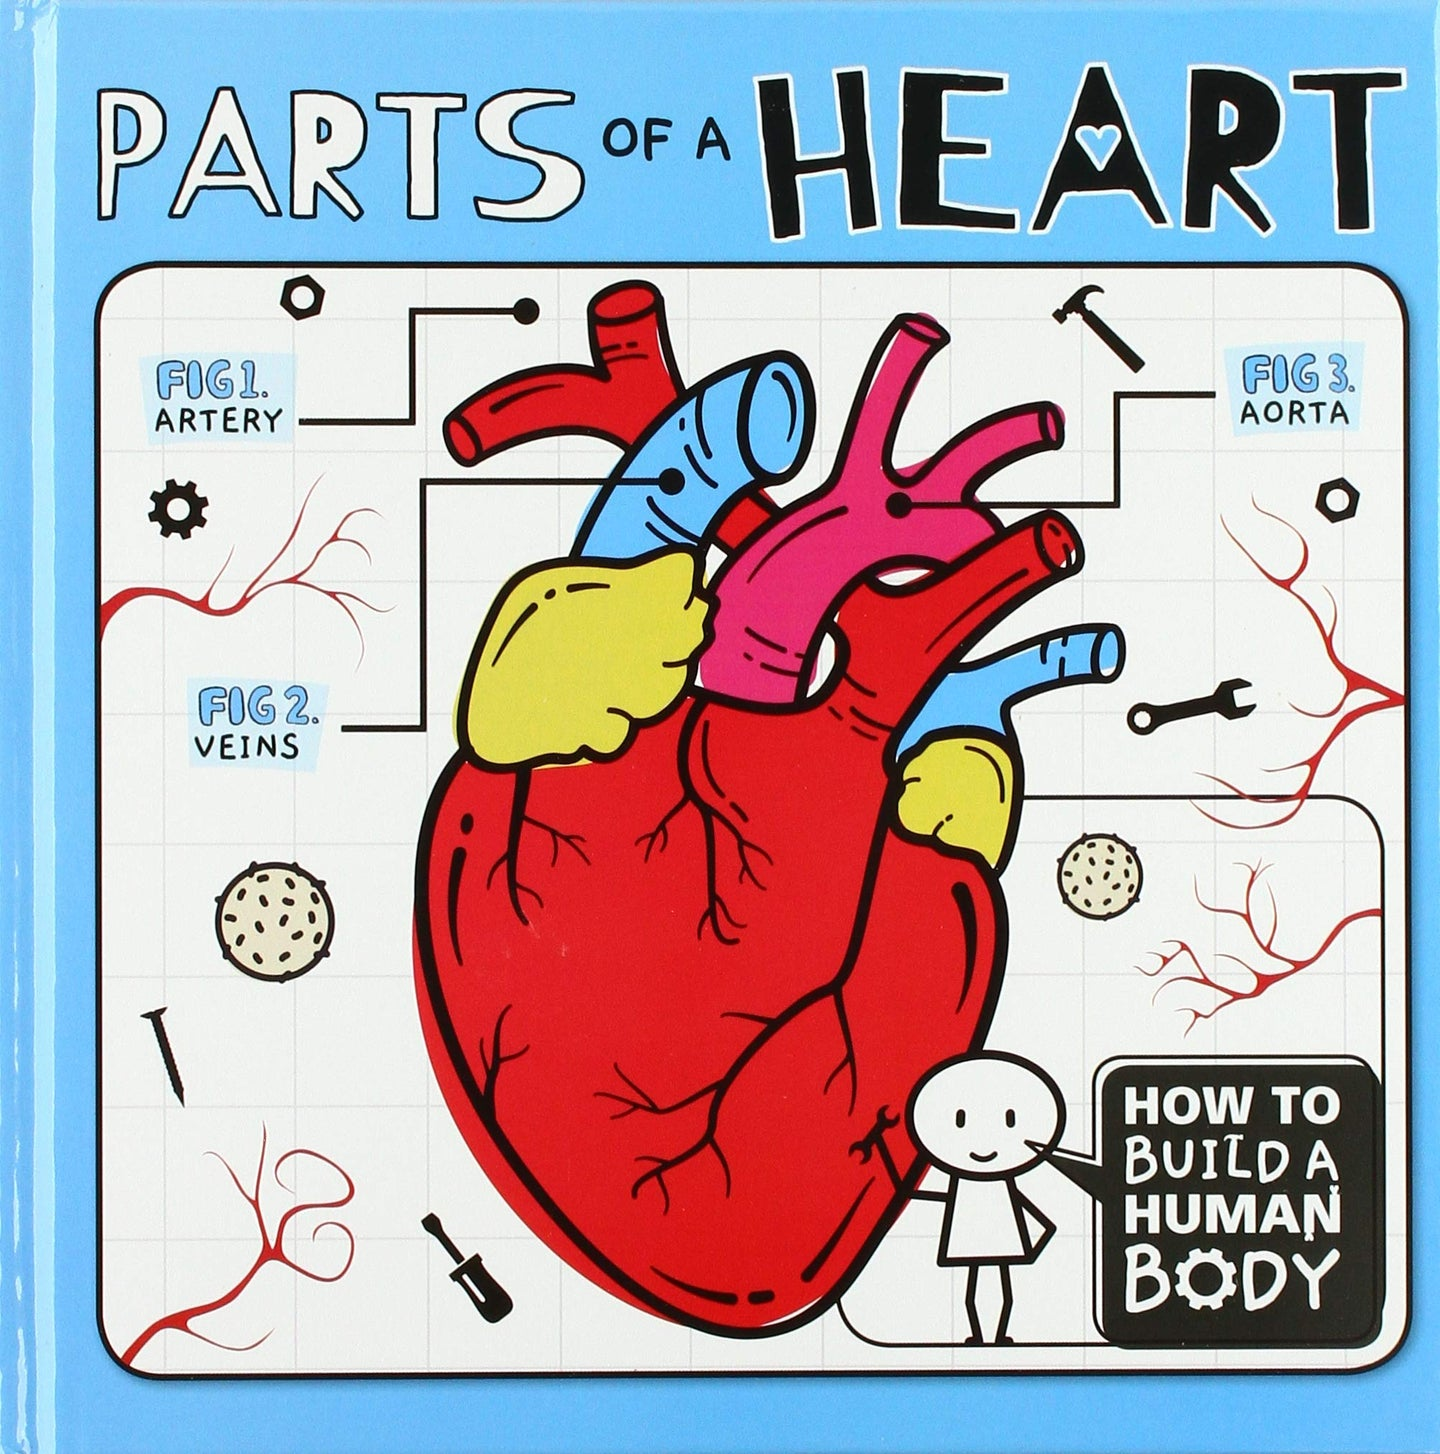 How To Build A Human Body: Parts of a Heart